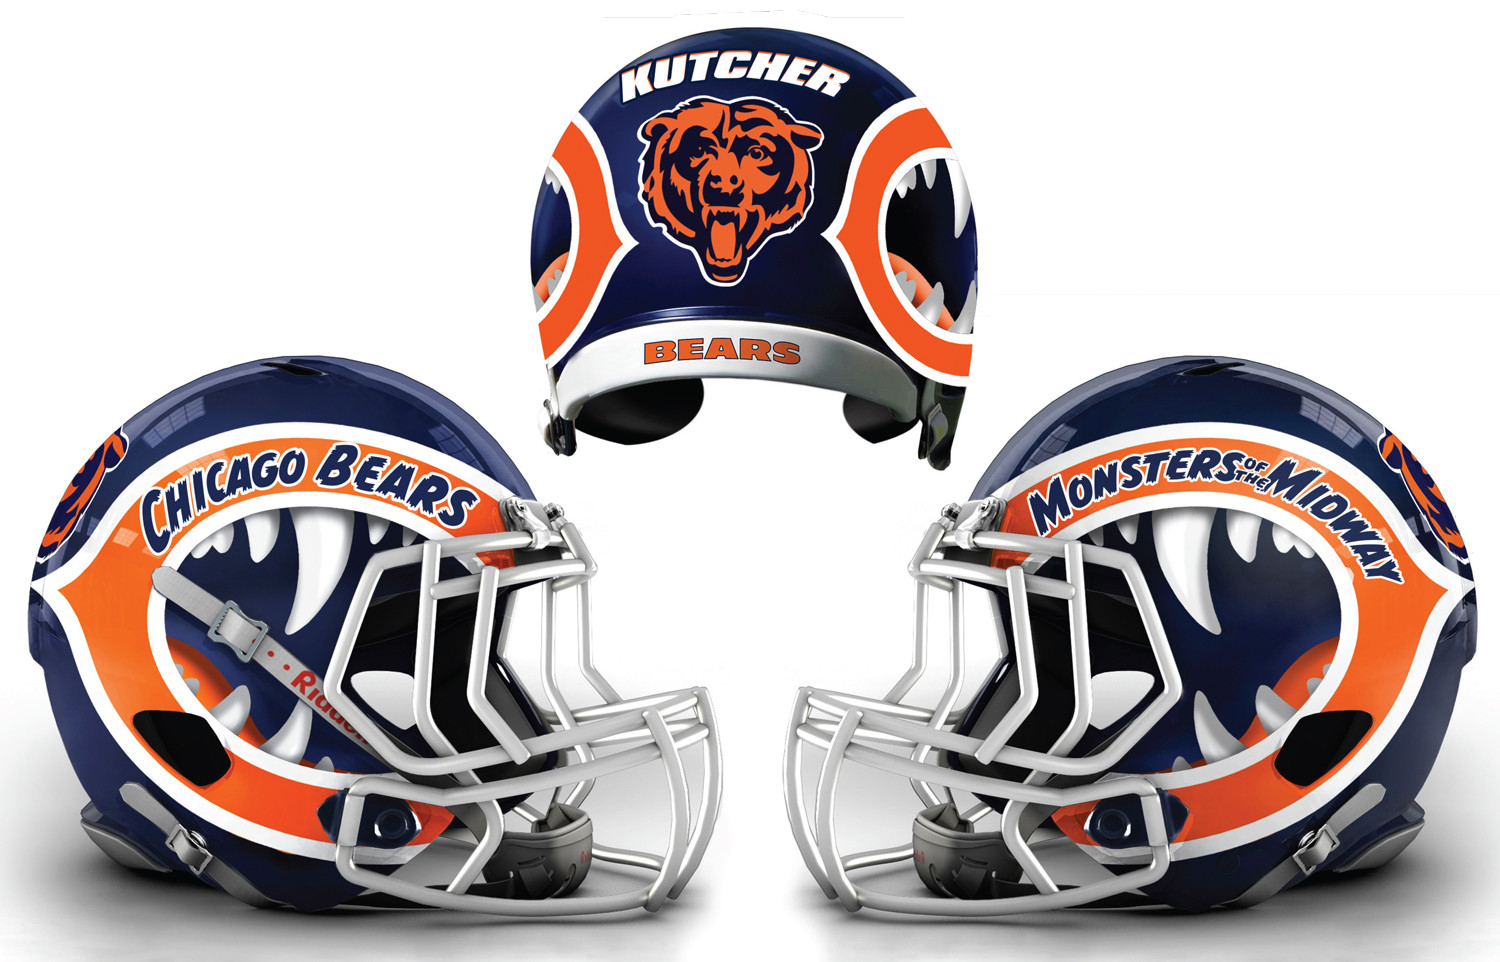 ASHTON KUTCHER BEARS NFL HELMET